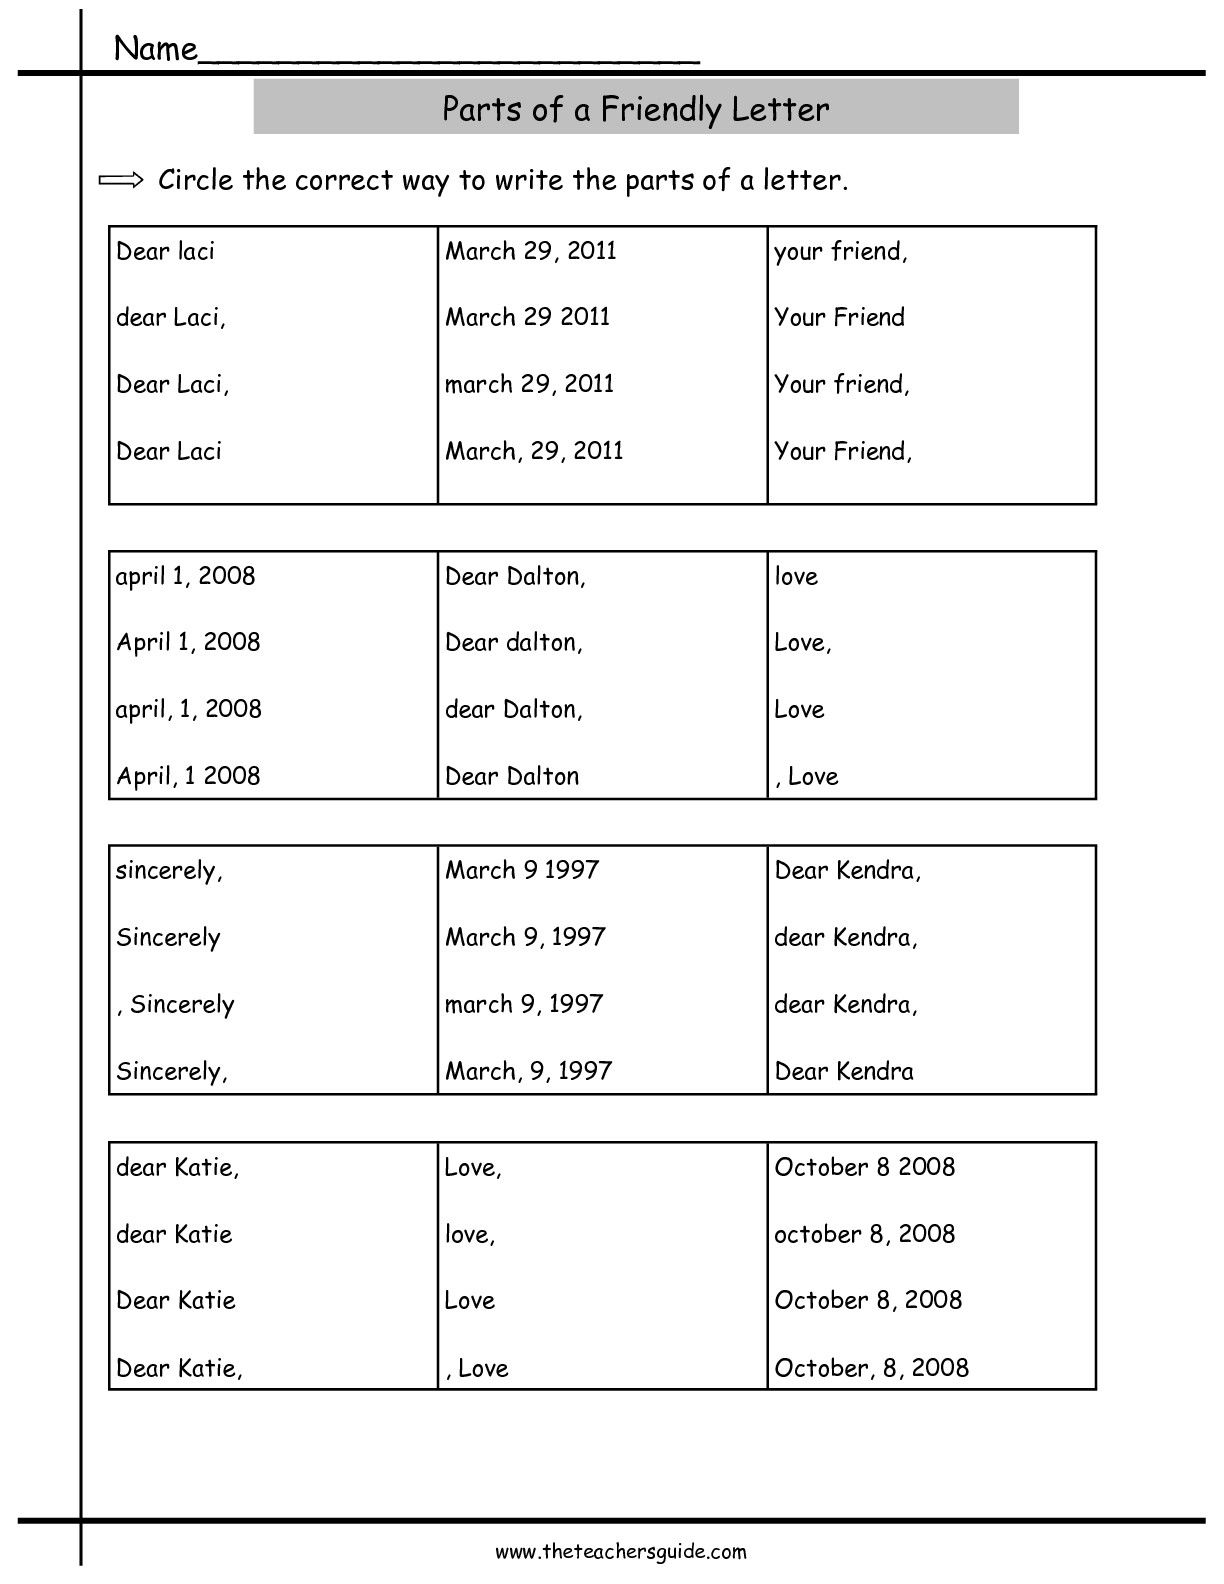 Parts Of A Friendly Letter Worksheet